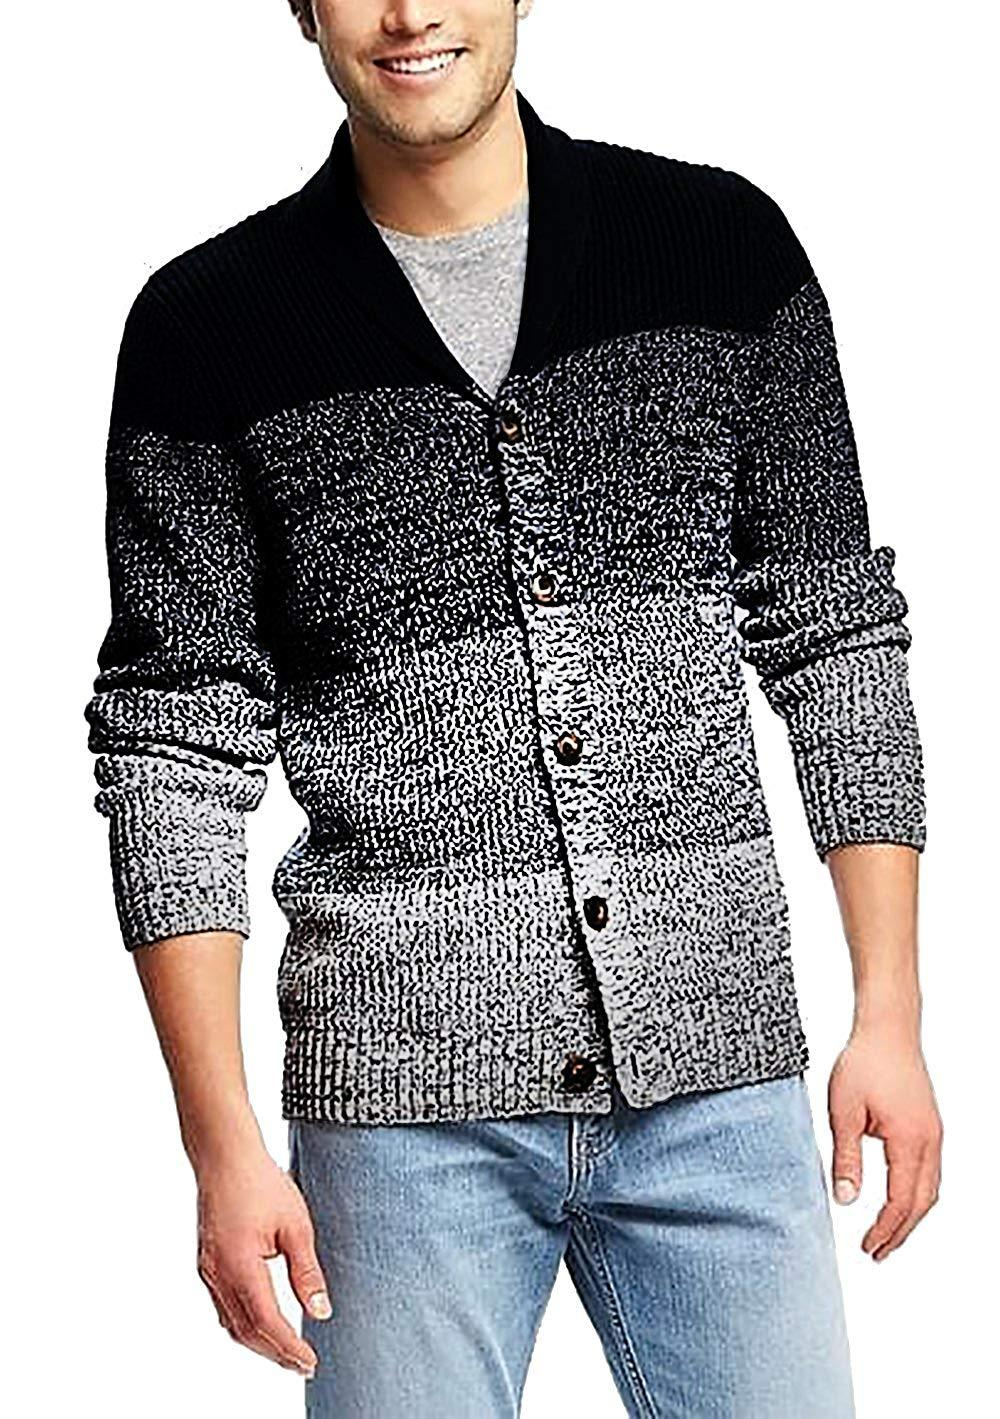 Mens Shawl Cardigan Casual Button Down Slim Fit Long Sleeve Rib Lightweight Knitted Sweater